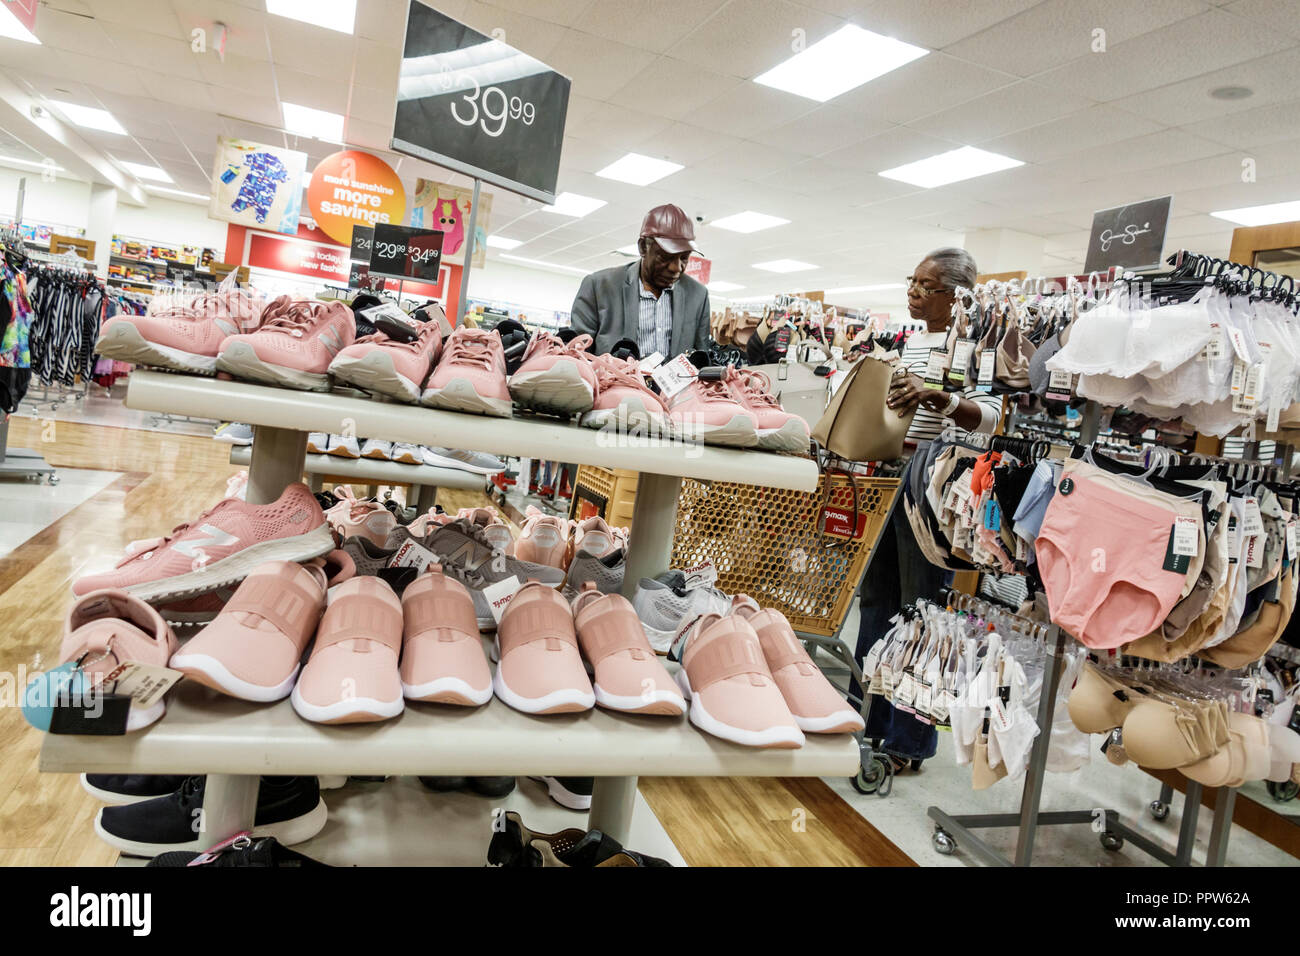 b11eba579f1665 Miami Florida Kendall T.J. TJ Maxx discount department store inside shopping  women s shoes sale display -